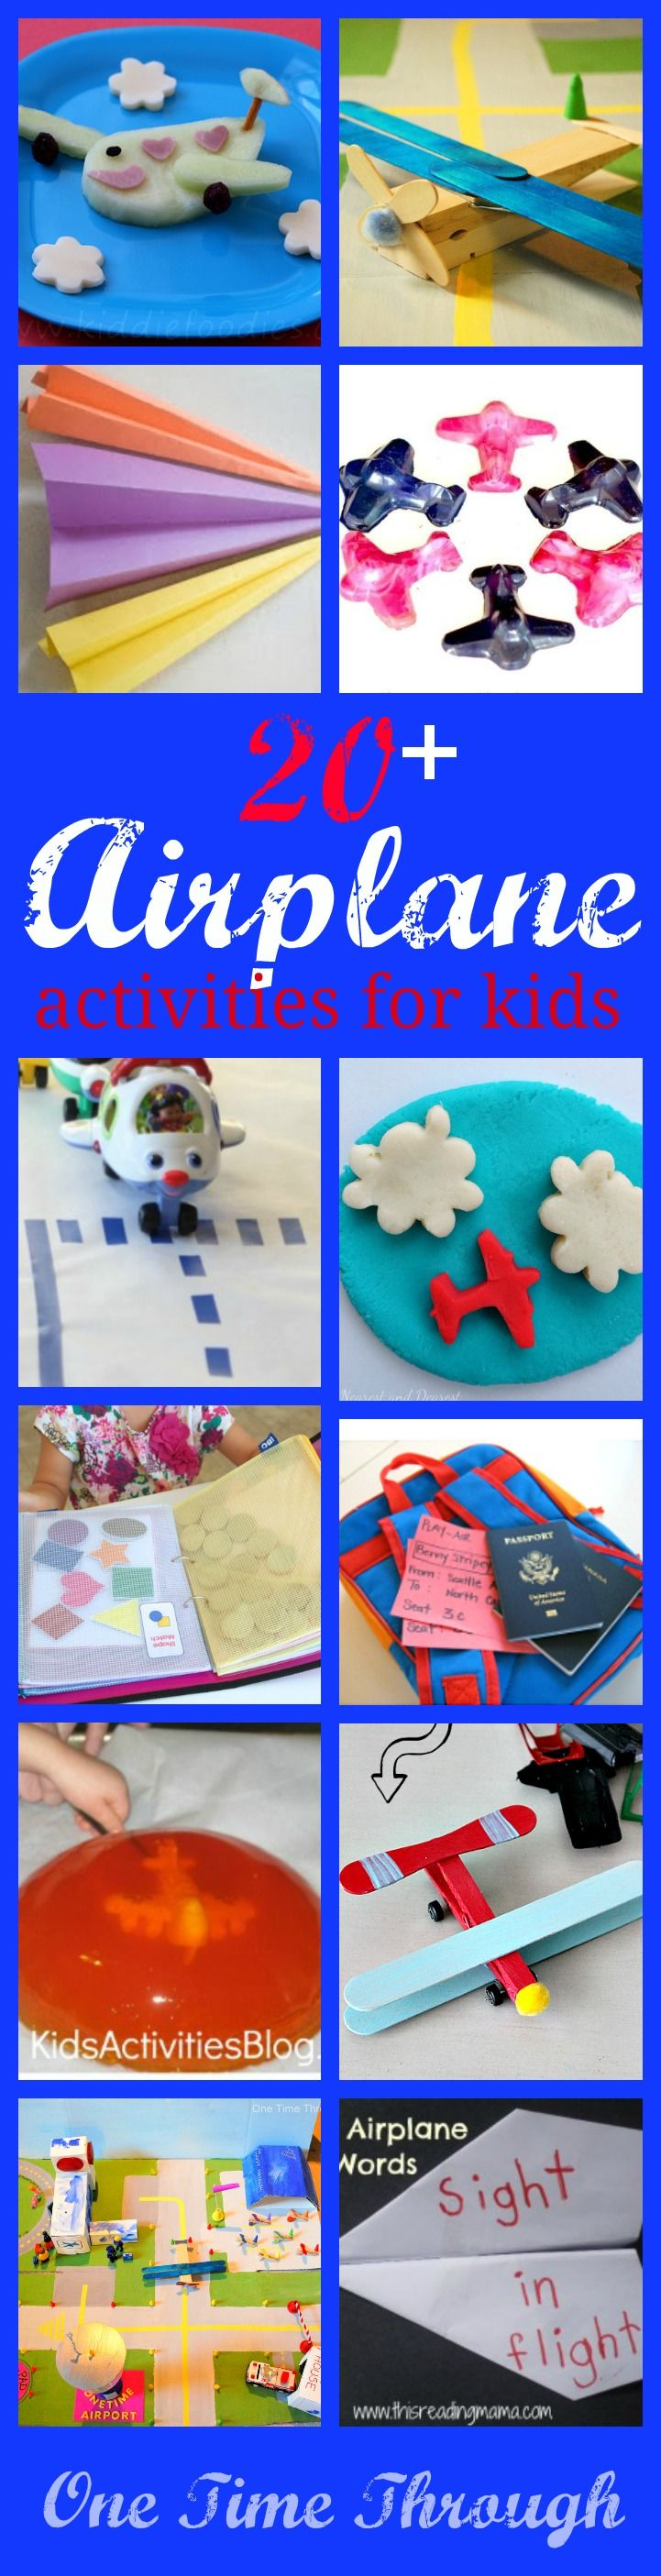 Find ideas for airplane crafts, airplane sensory play and pretend play, airplane travelling tips and activities and airplane party ideas! {One Time Through}